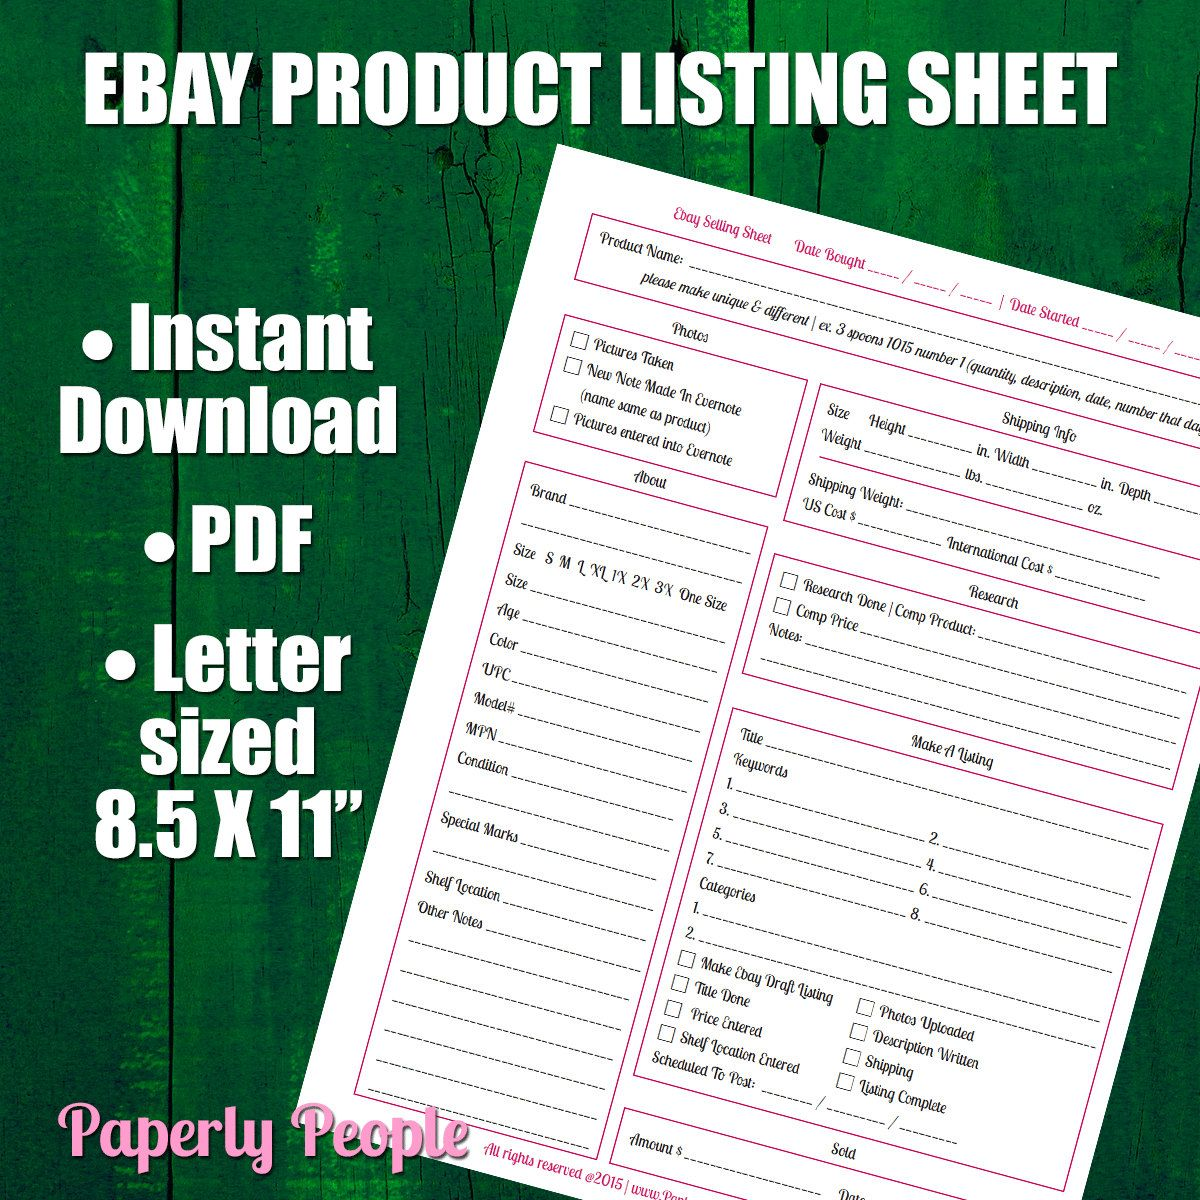 Ebay Products Listing Sheet Versions Evernote Dropbox Ebay - Ebay product listing template